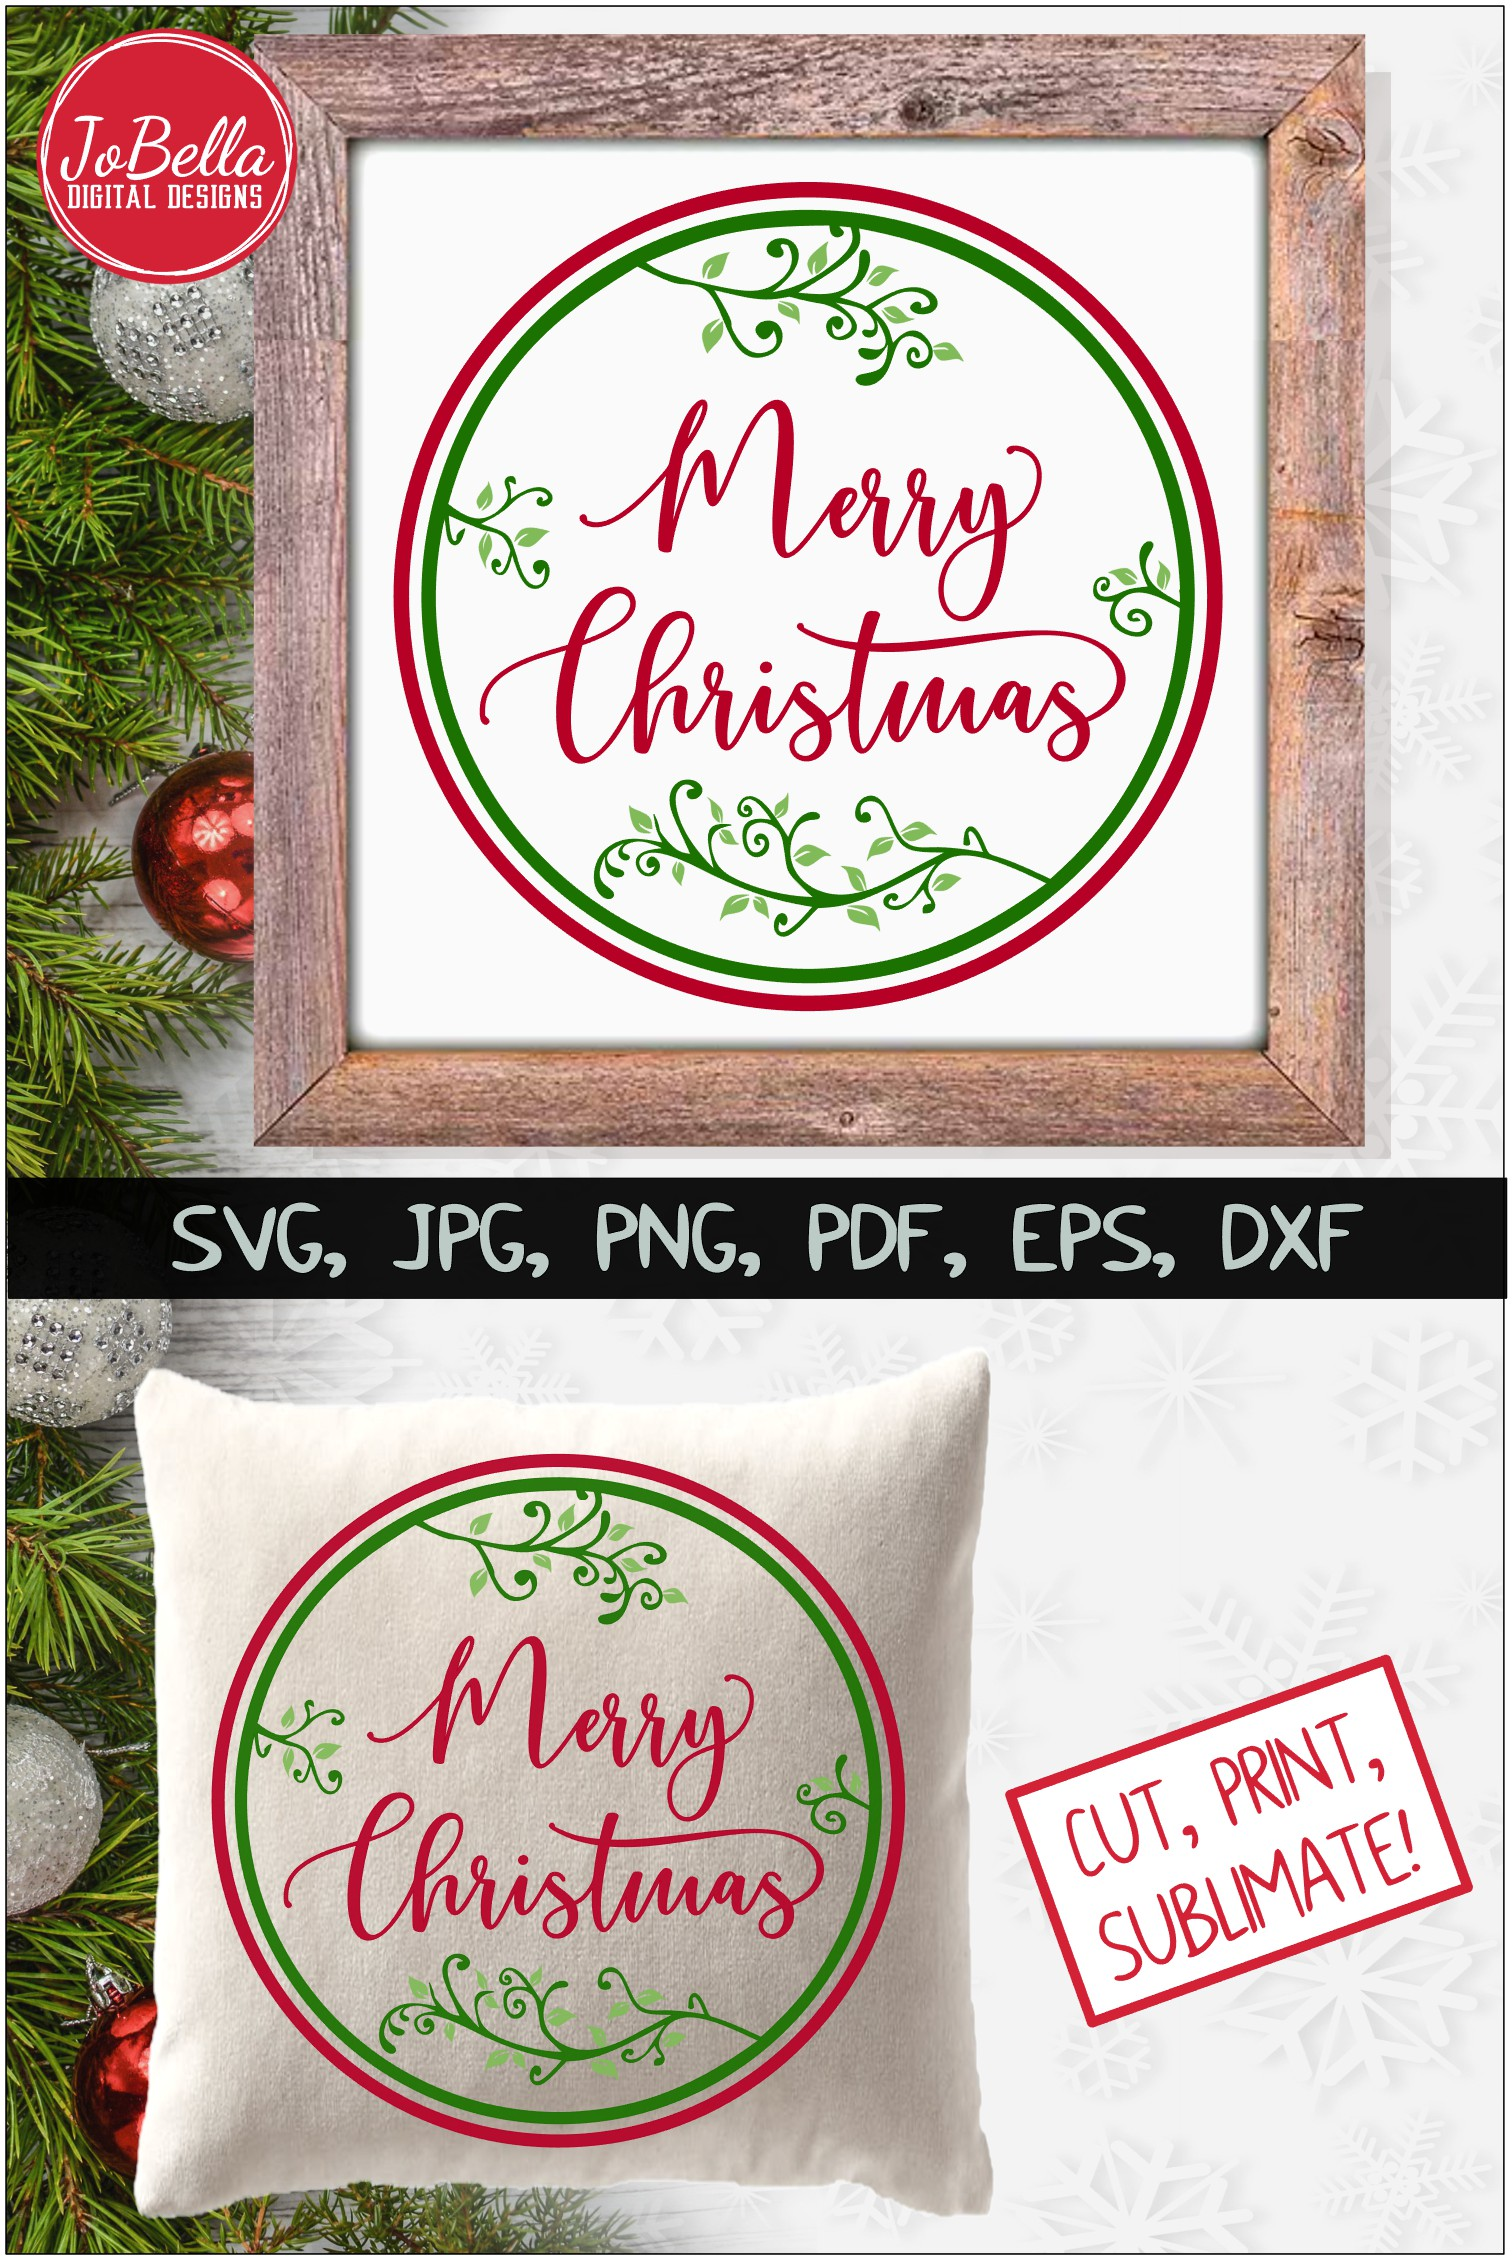 Round Vines Merry Christmas SVG Printable & Sublimation PNG example image 4